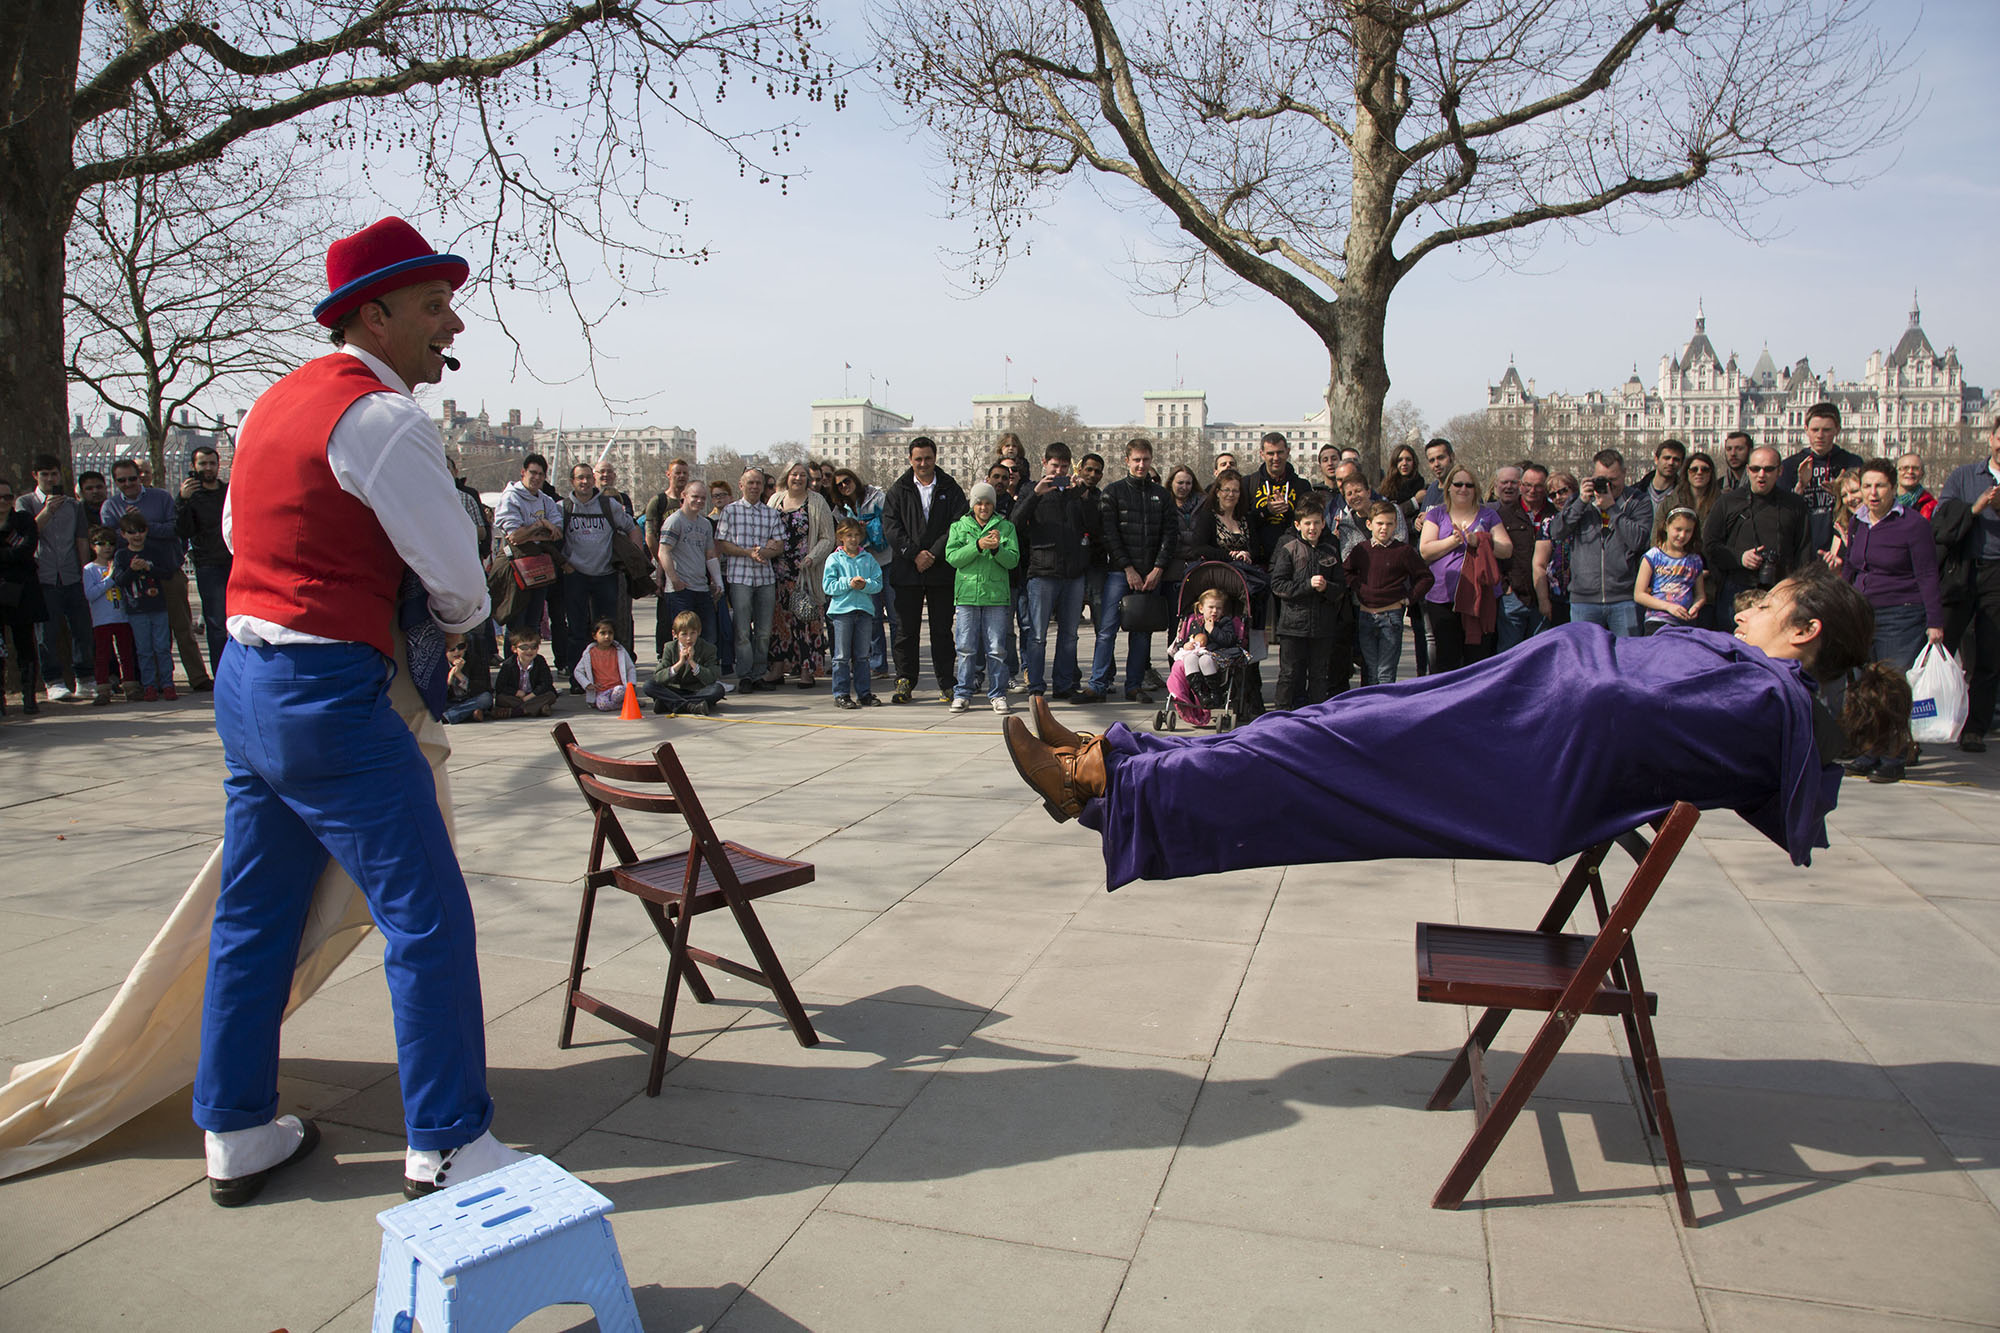 Street performer performs a levitation trick with a member of the public.